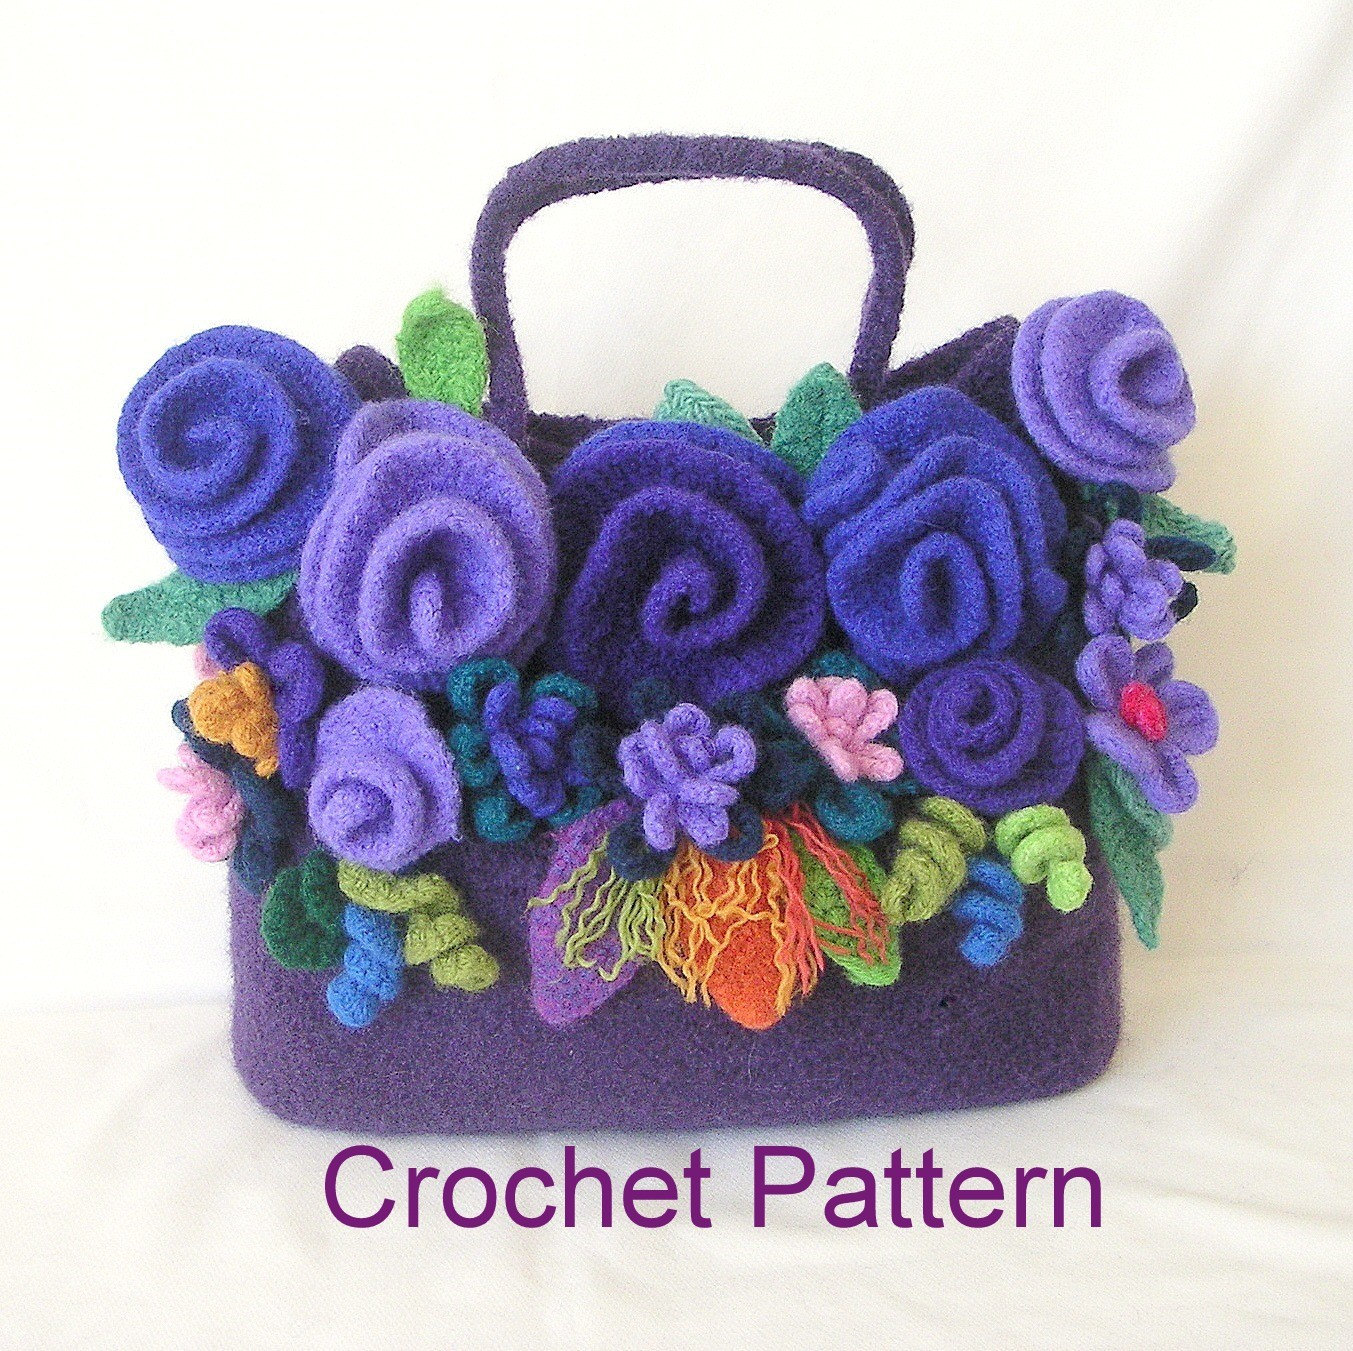 How To Make Crochet Purse : How to make Crochet Felted Flower Bag by GraceKnittingPattern